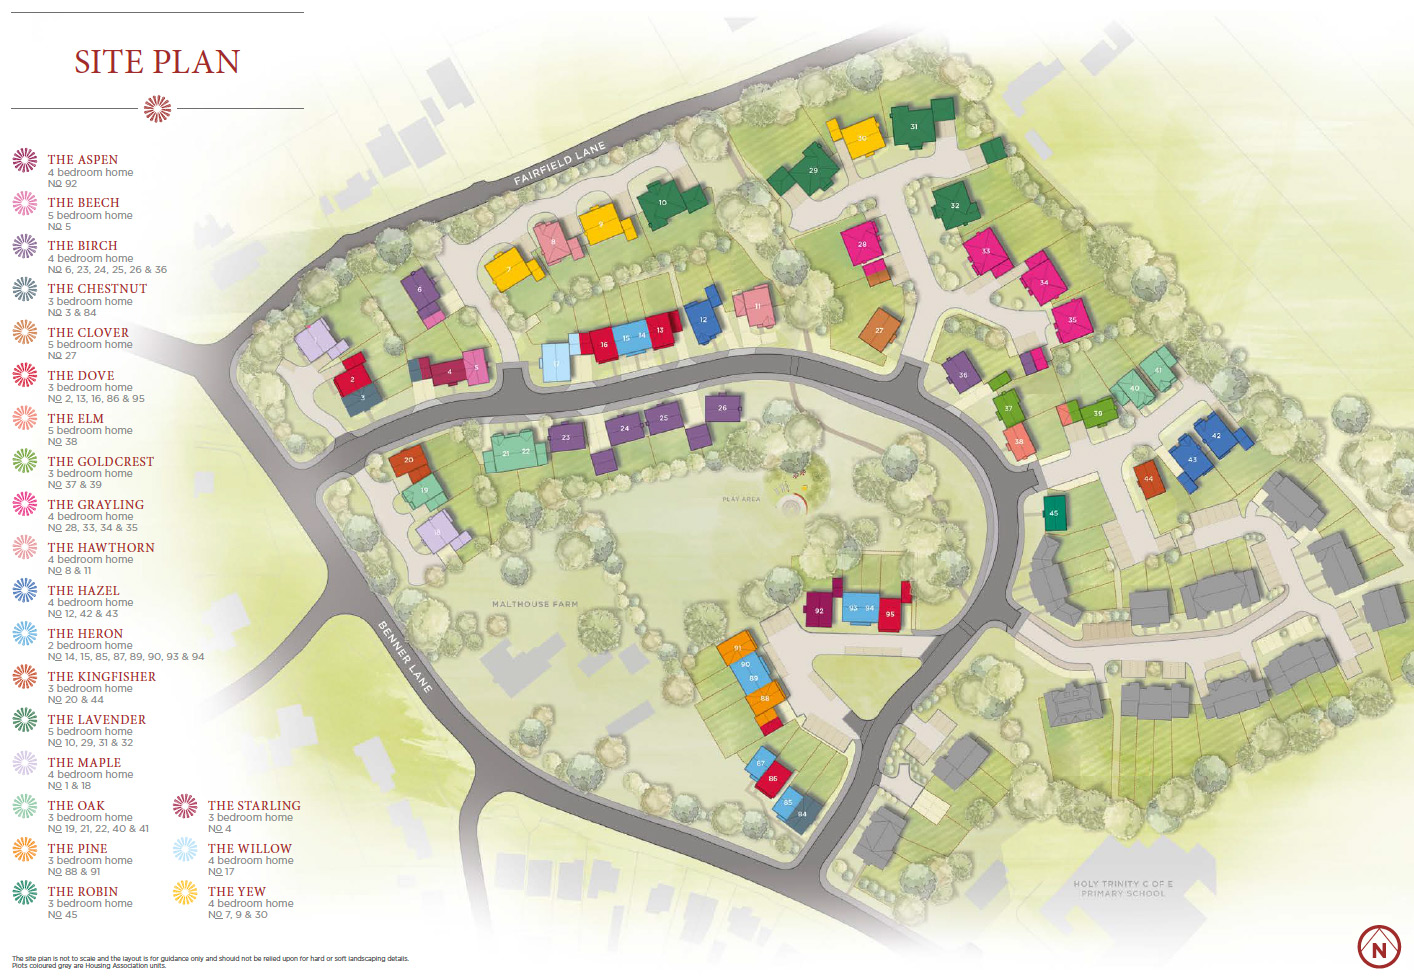 Plot 88 – The Pine Siteplan